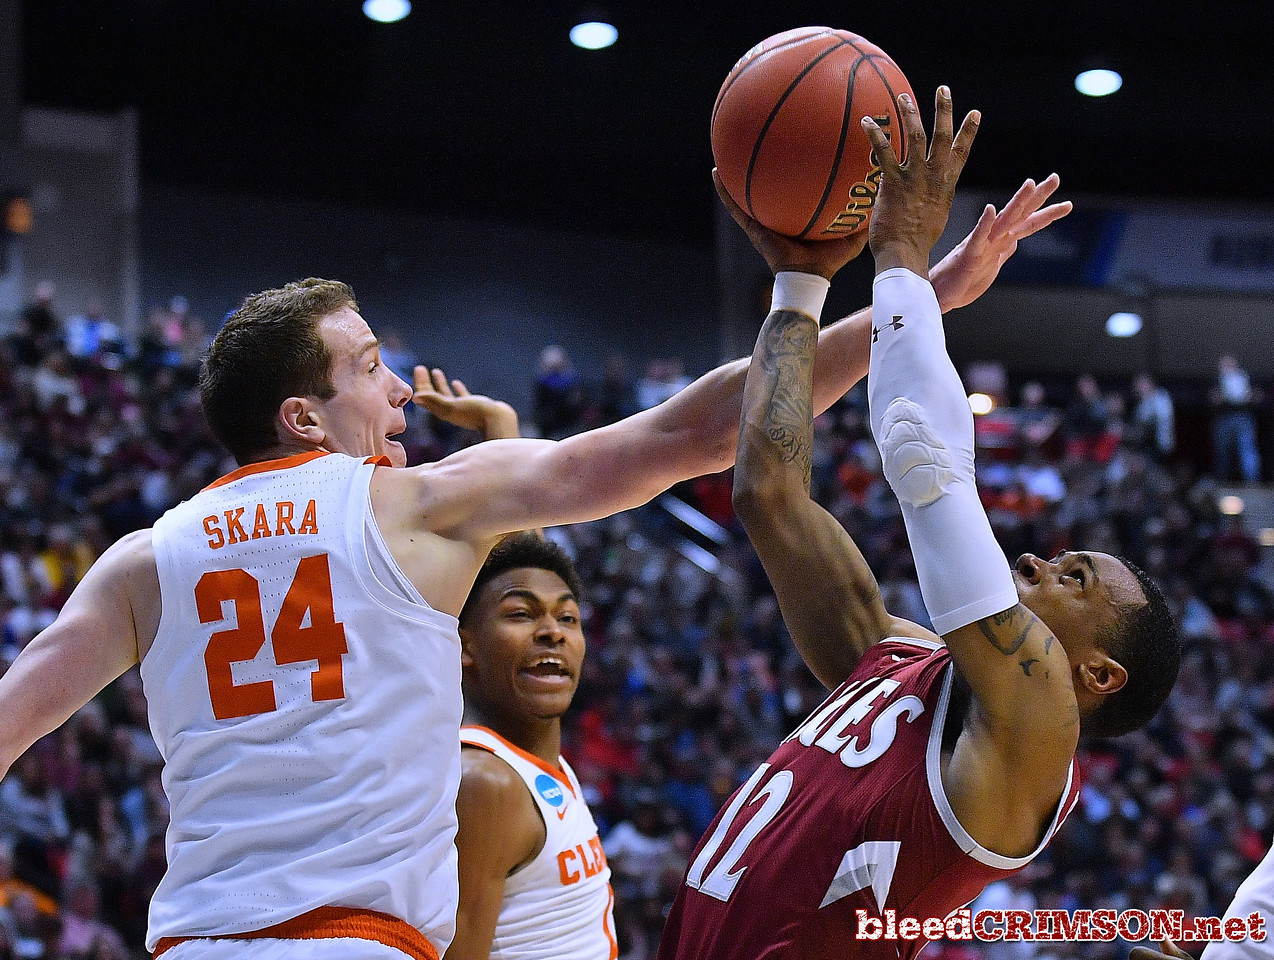 SAN DIEGO, CA - MARCH 16:  A.J. Harris #12 of the New Mexico State Aggies is fouled by David Skara #24 of the Clemson Tigers during a first round game of the Men's NCAA Basketball Tournament at Viejas Arena in San Diego, California.  (Photo by Sam Wasson)